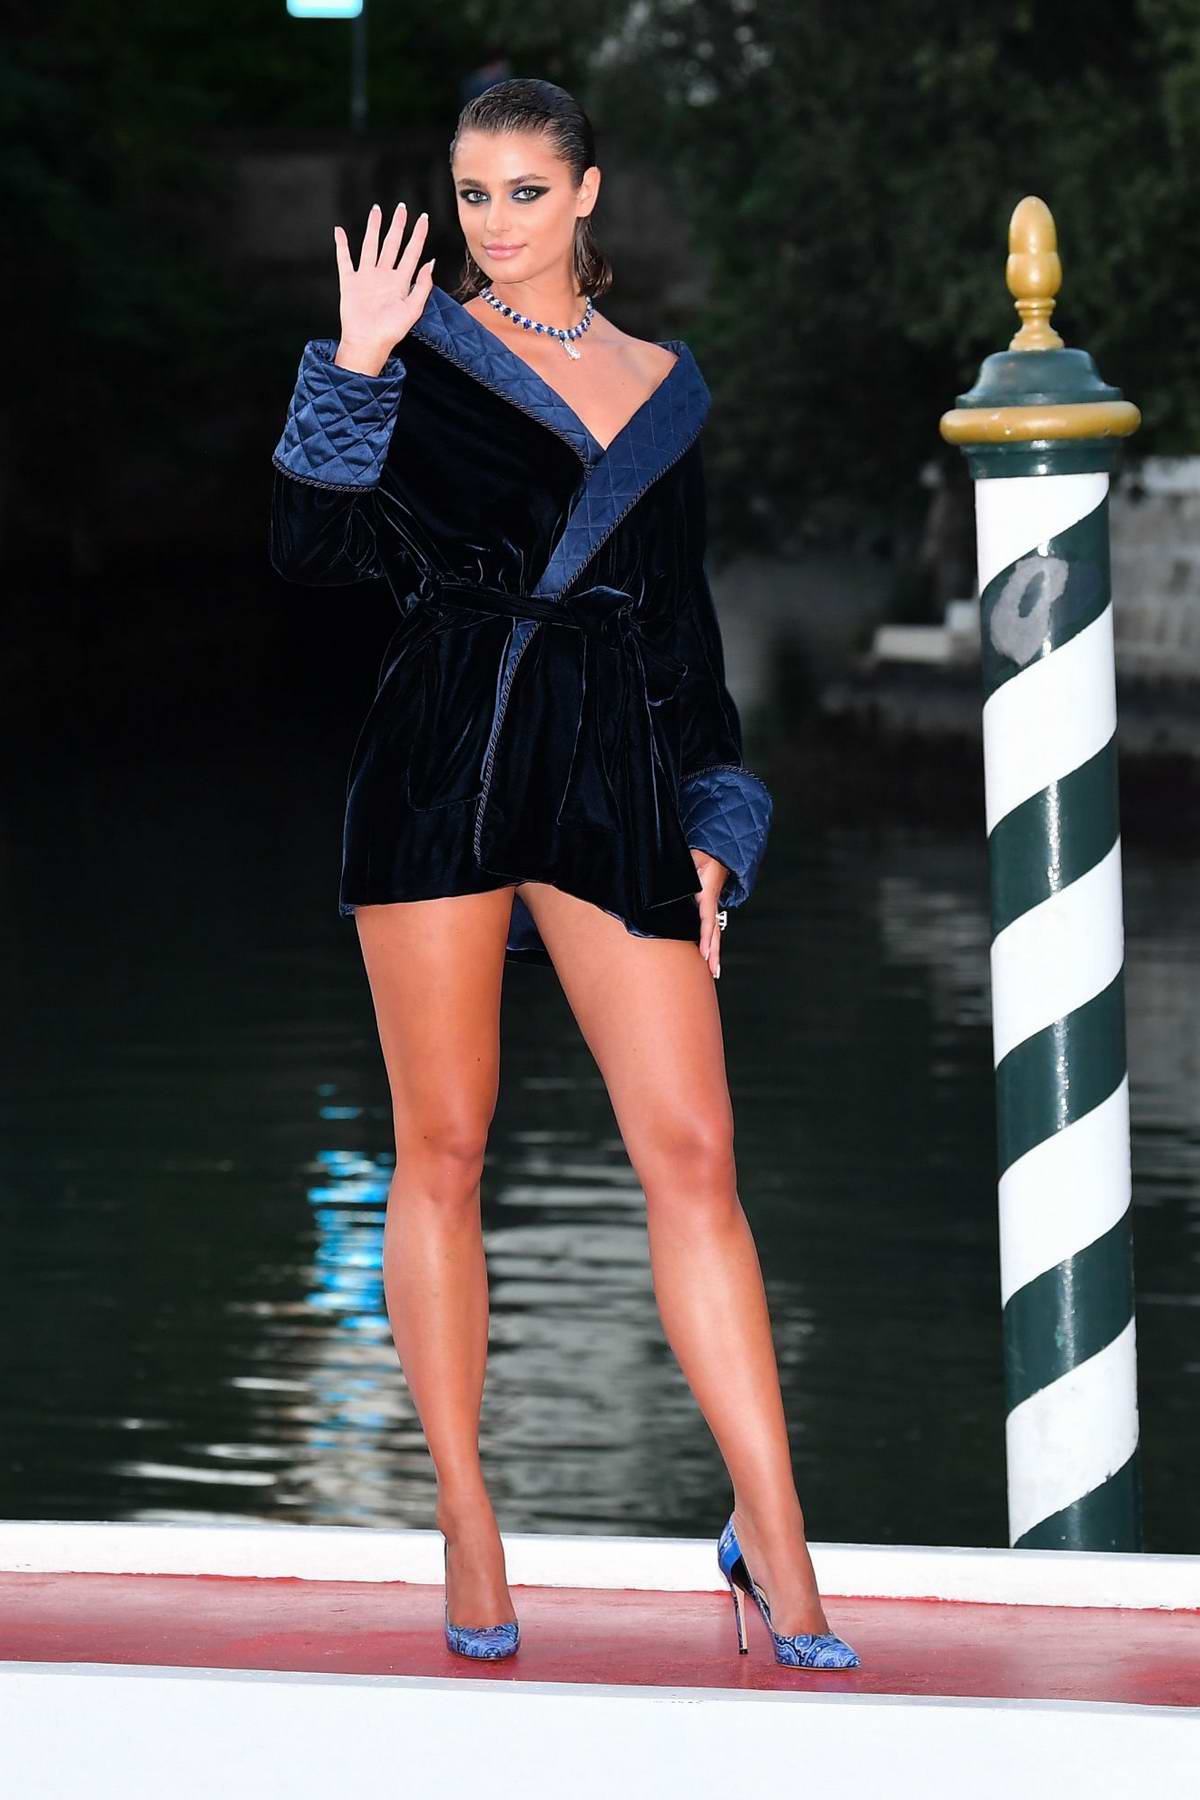 Taylor Hill looks stunning as she pose for photos at the 77th Venice Film Festival in Venice, Italy